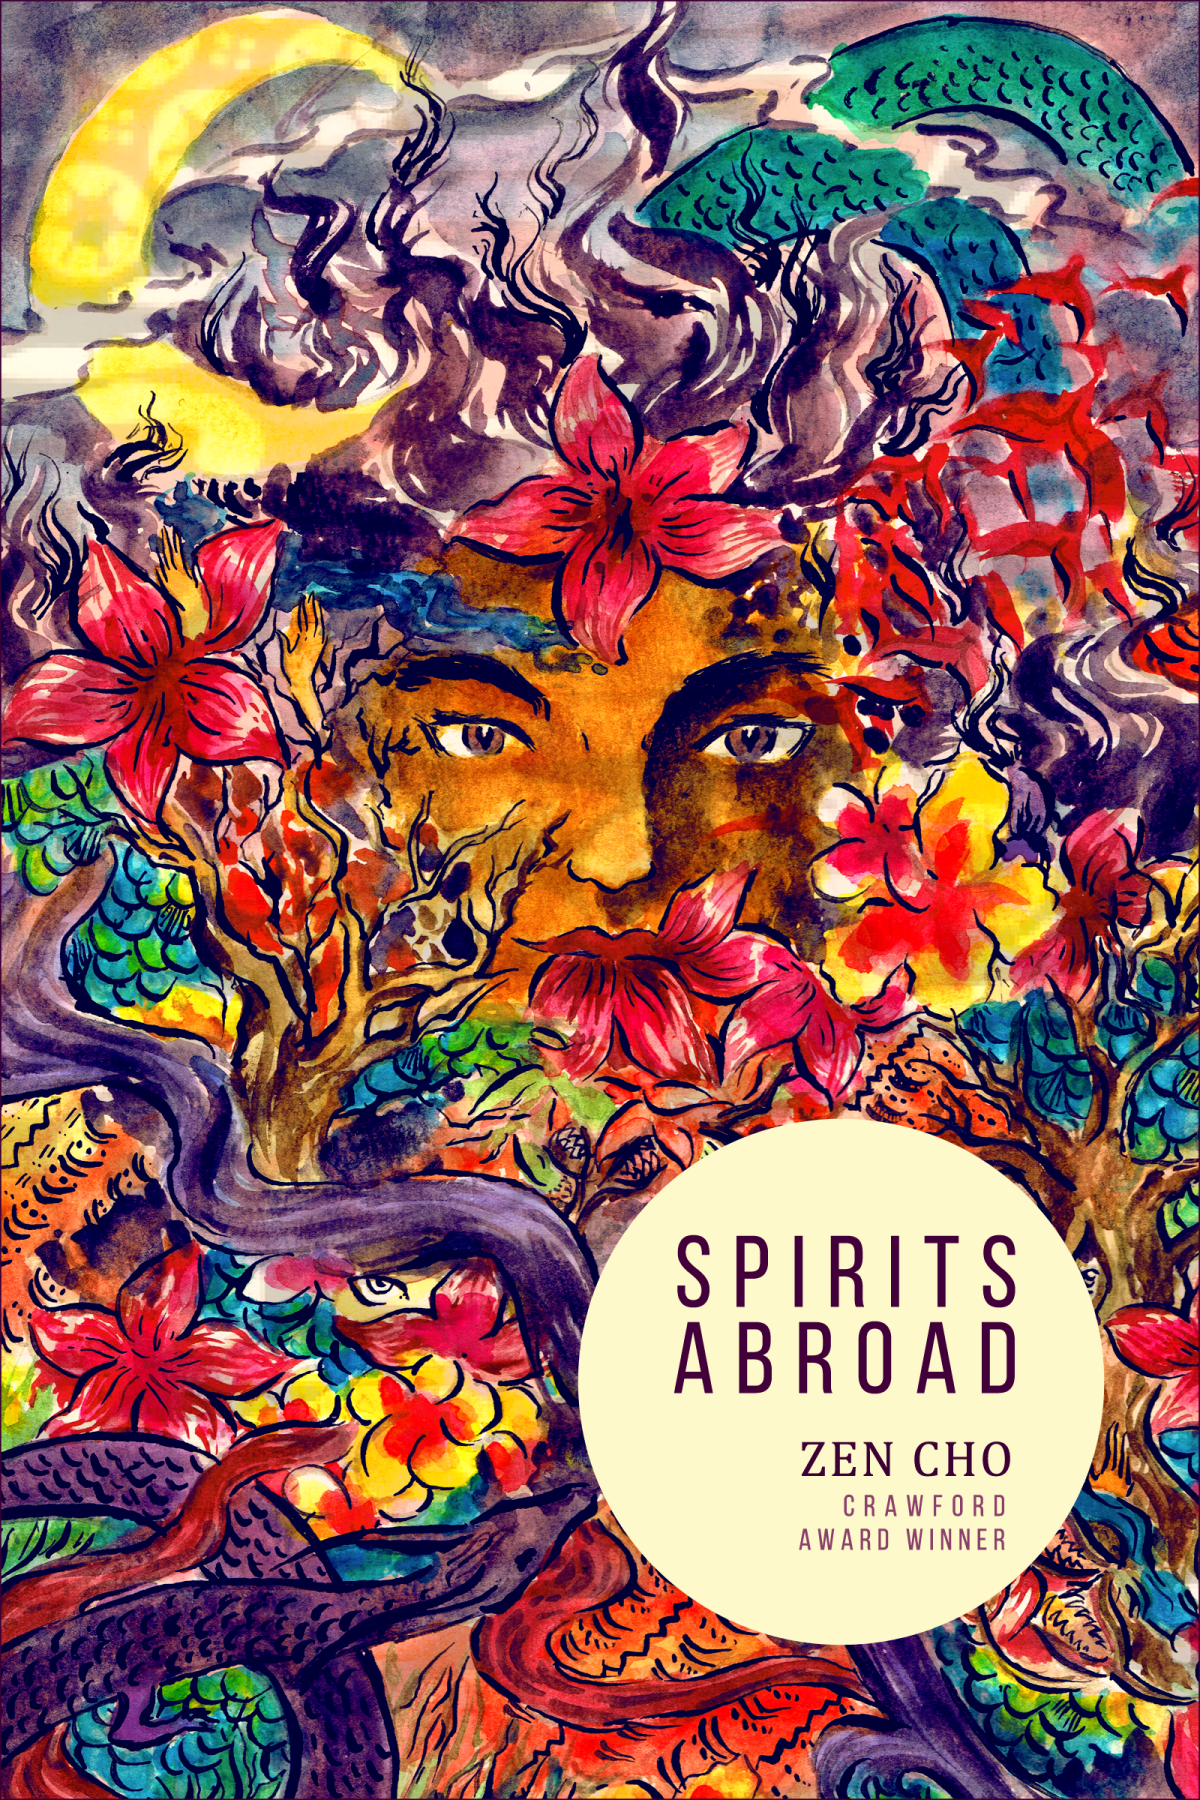 Book cover: Spirits Abroad - Zen Cho (artwork by Likhain)